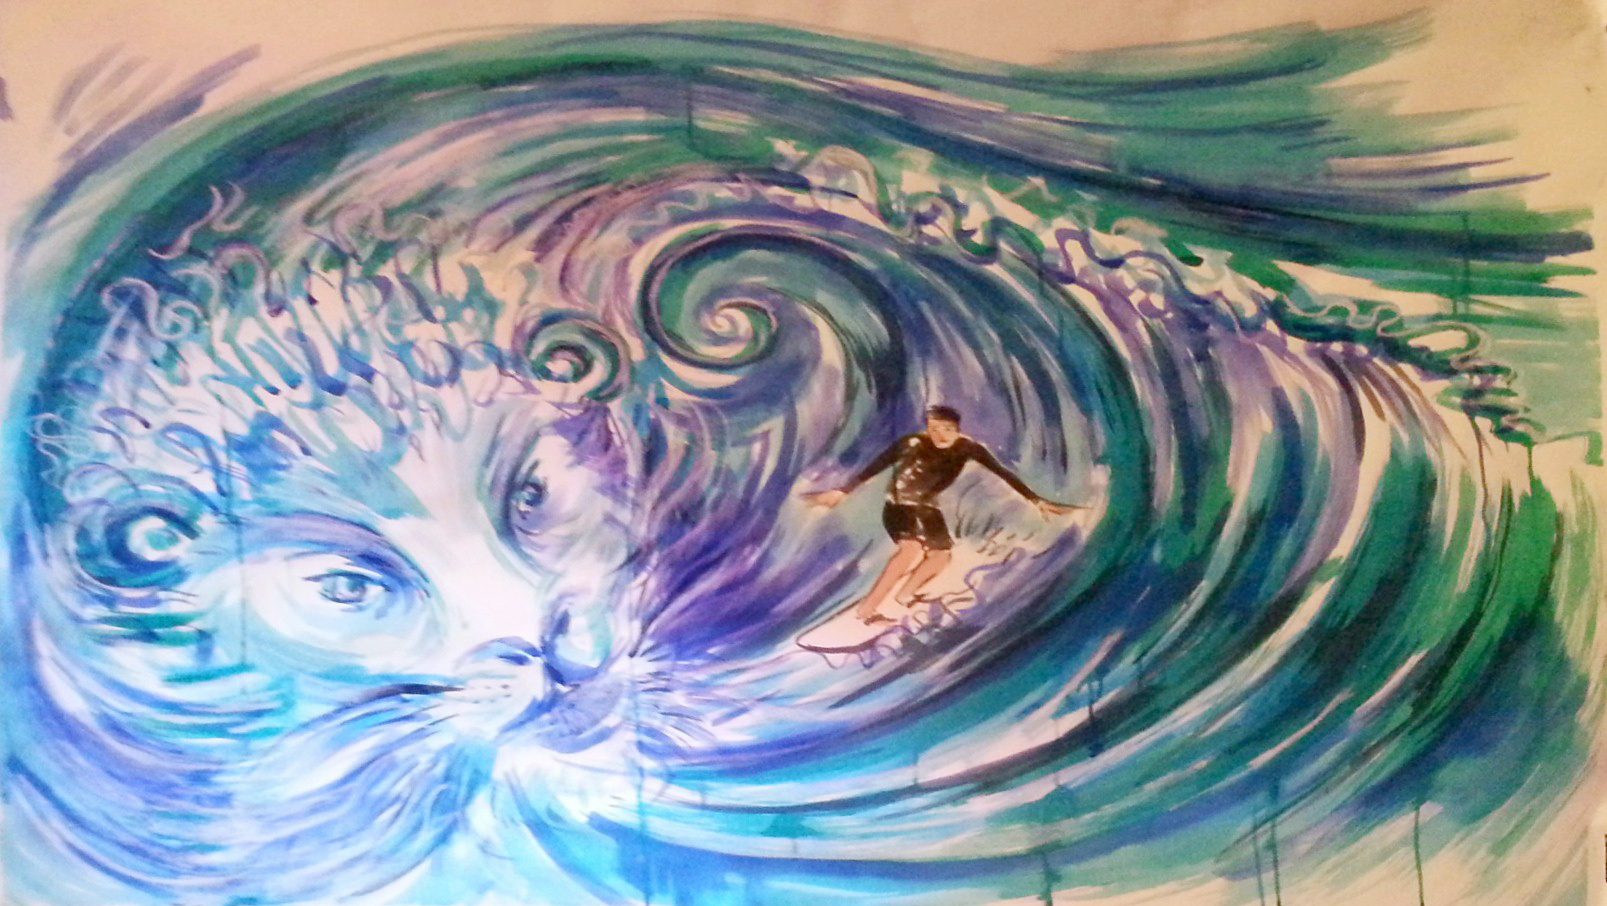 Riding the wave | Painted live at Transform by Bev Jones, used with permission